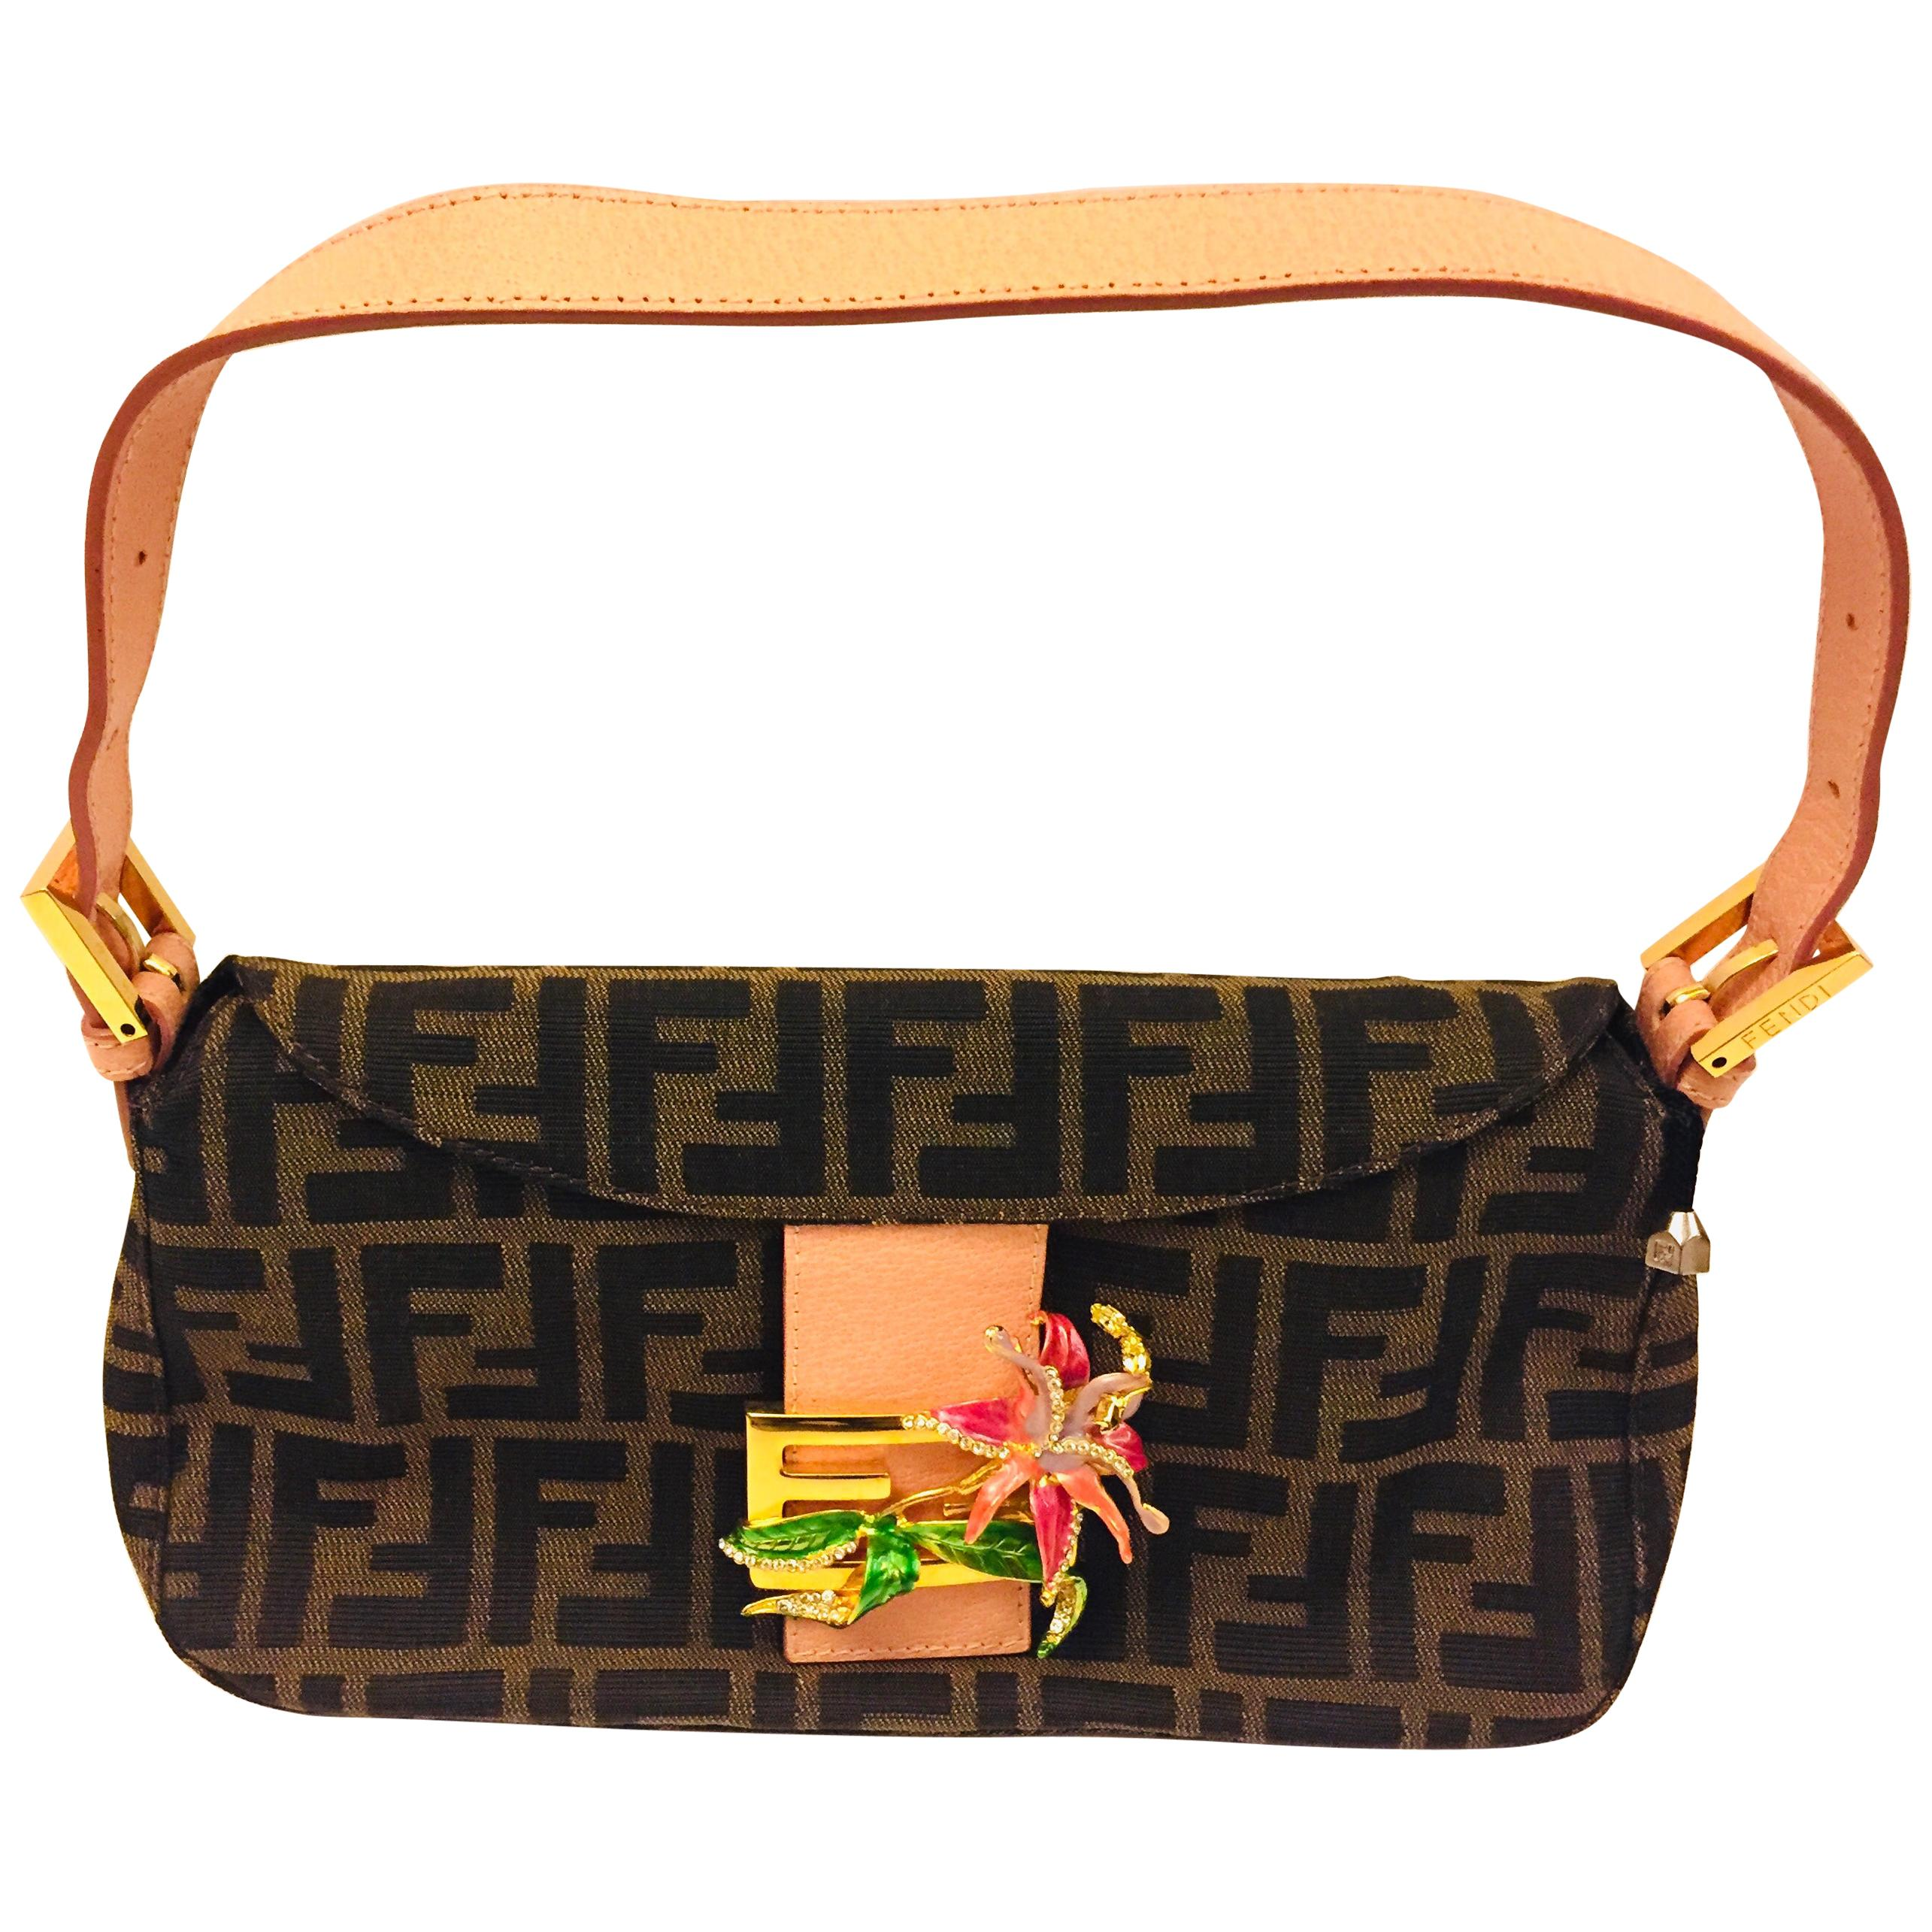 Fendi Zucca baguette limited edition with crystal/rhinestones orchid buckle